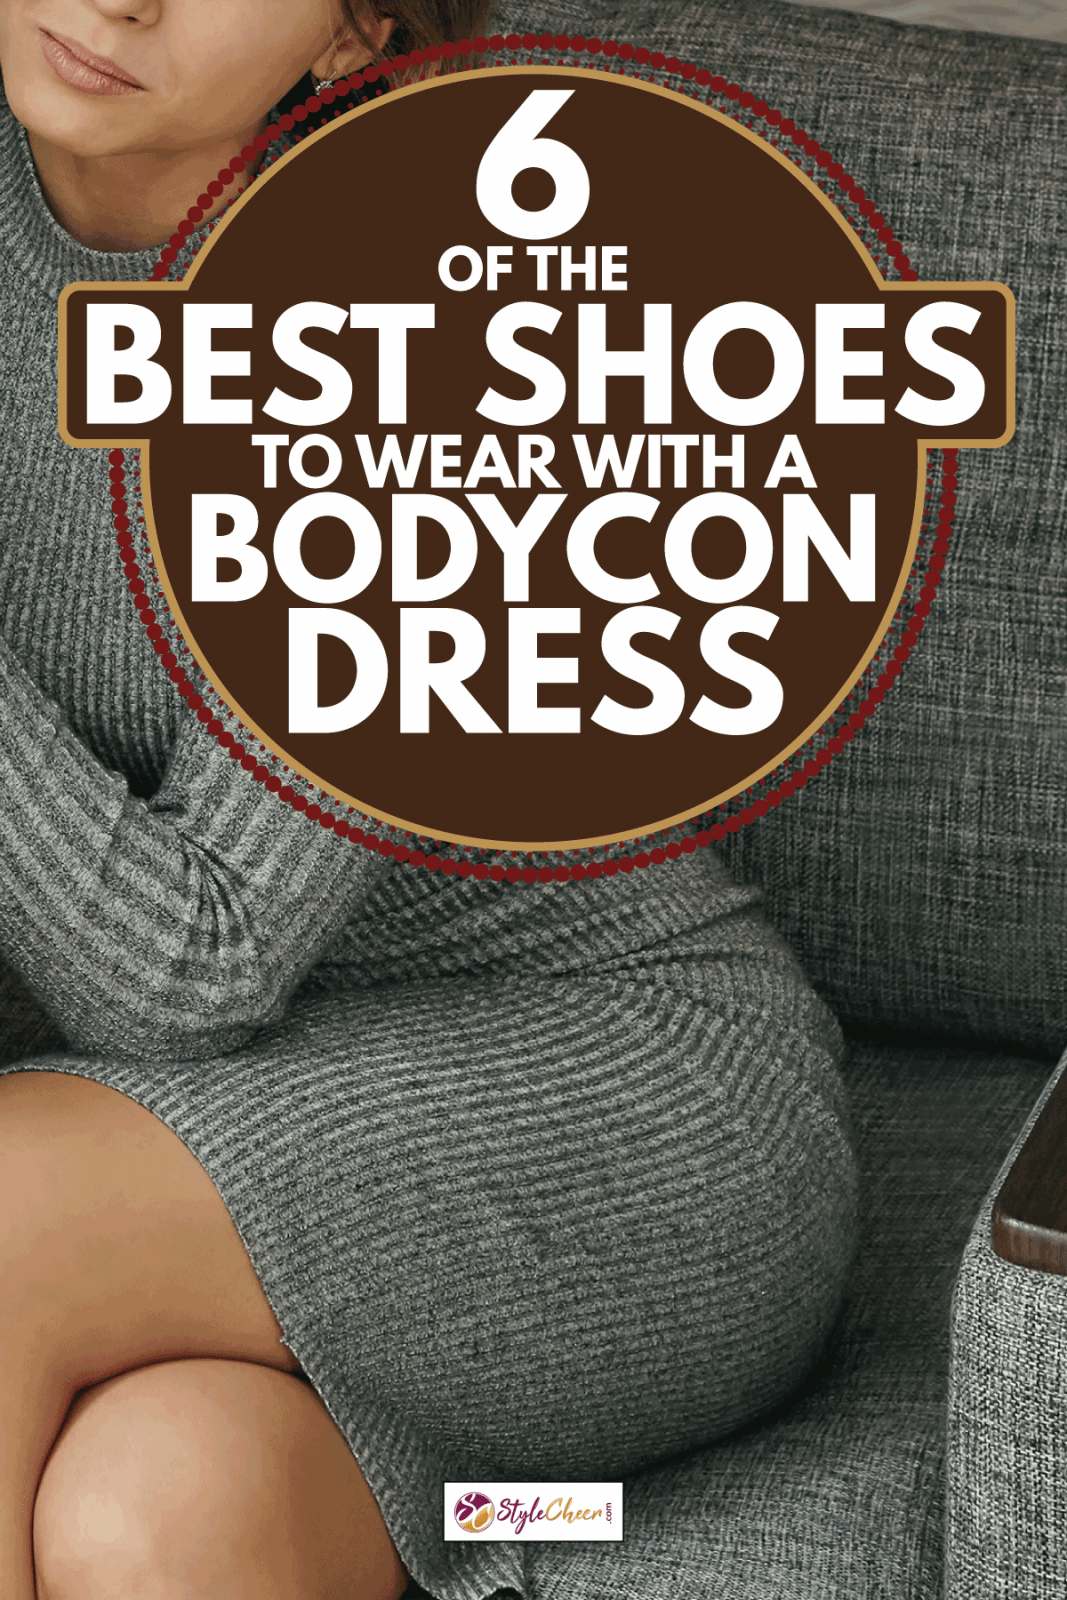 young lady wearing bodycon dress sitting on a gray sofa. 6 Of The Best Shoes To Wear With A Bodycon Dress